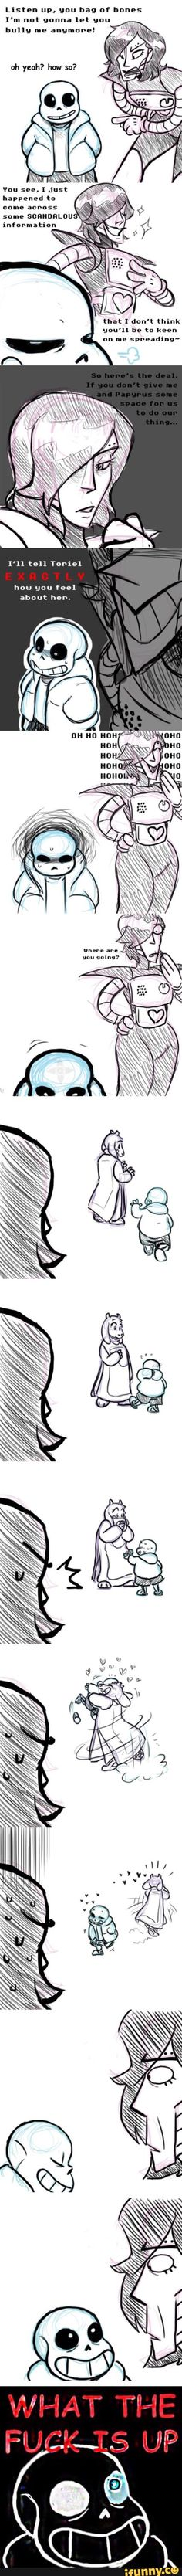 sans and mettaton - what the fuck is up, mettaton??!!<----I don't ship toriel and sans, but it's funny